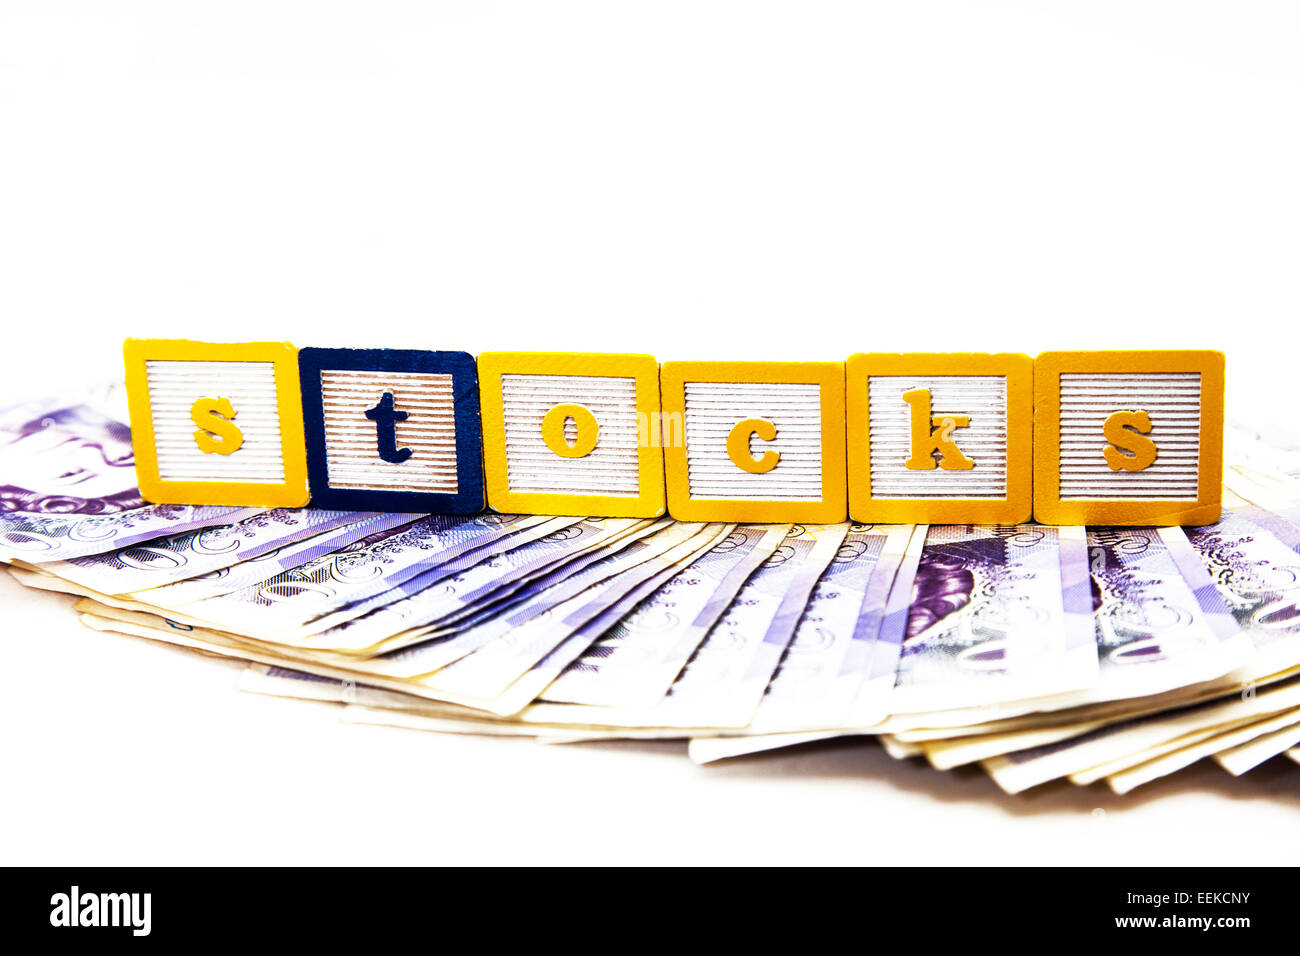 Stocks shares money making FTSE gamble invest investment cash reward rewards dividend cut out copy space white background - Stock Image